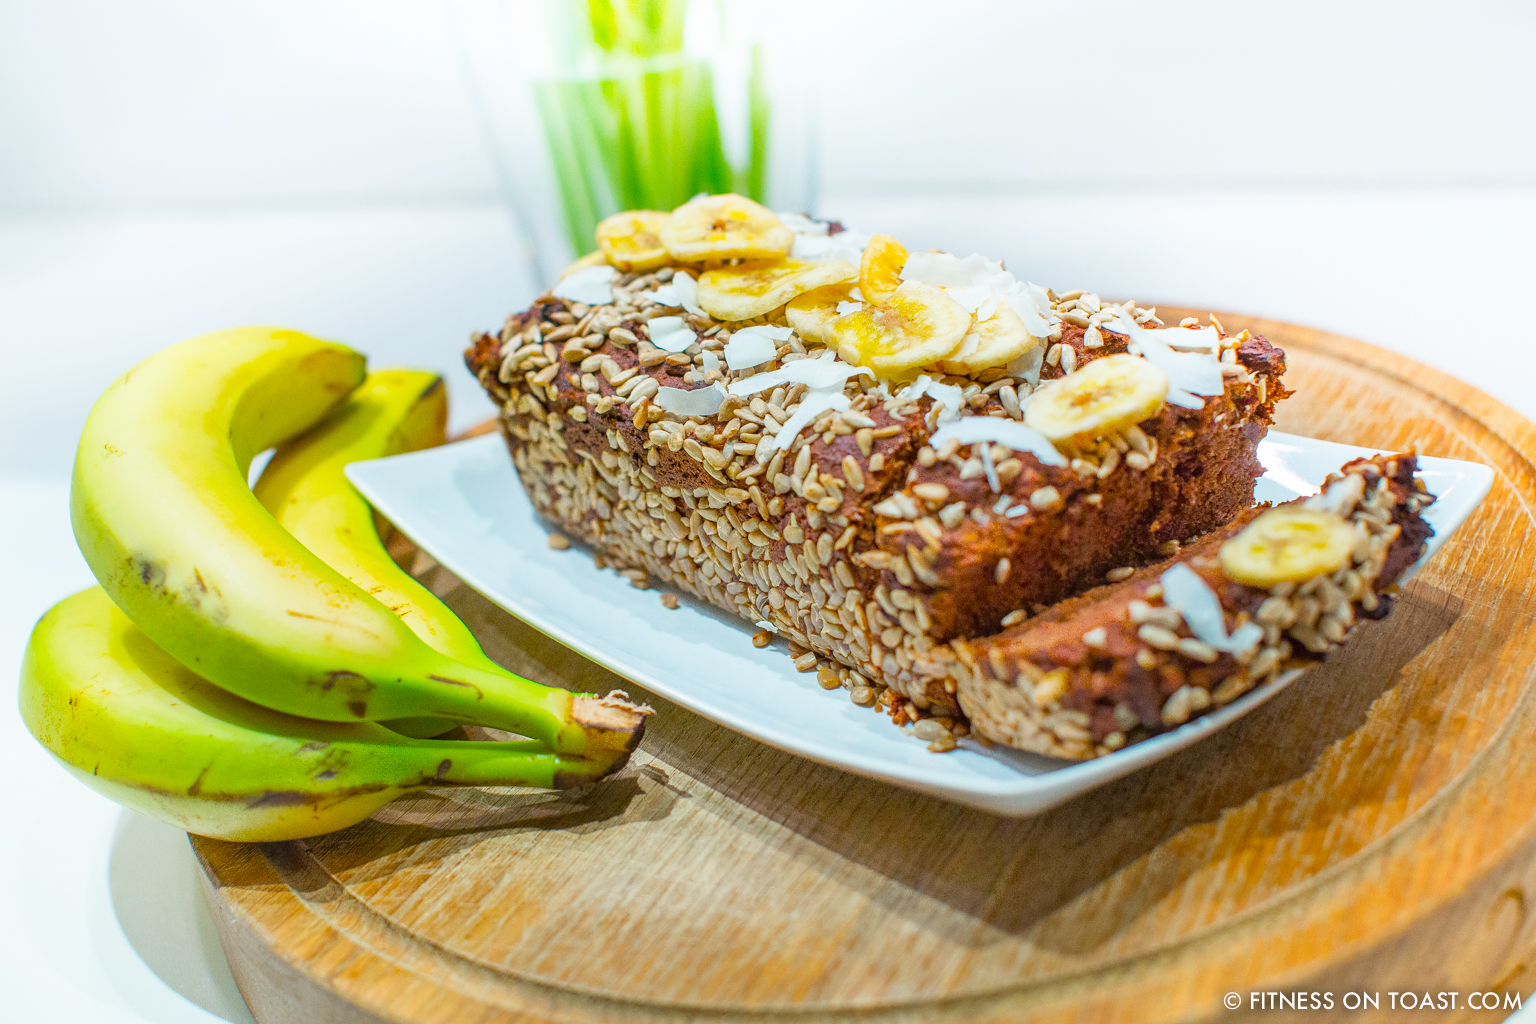 Fitness On Toast Faya Blog Girl Healthy Workout Recipe Food Idea Diet Nutrition Banana Bread Cake Healthier Lighter Recipes Recipe-4